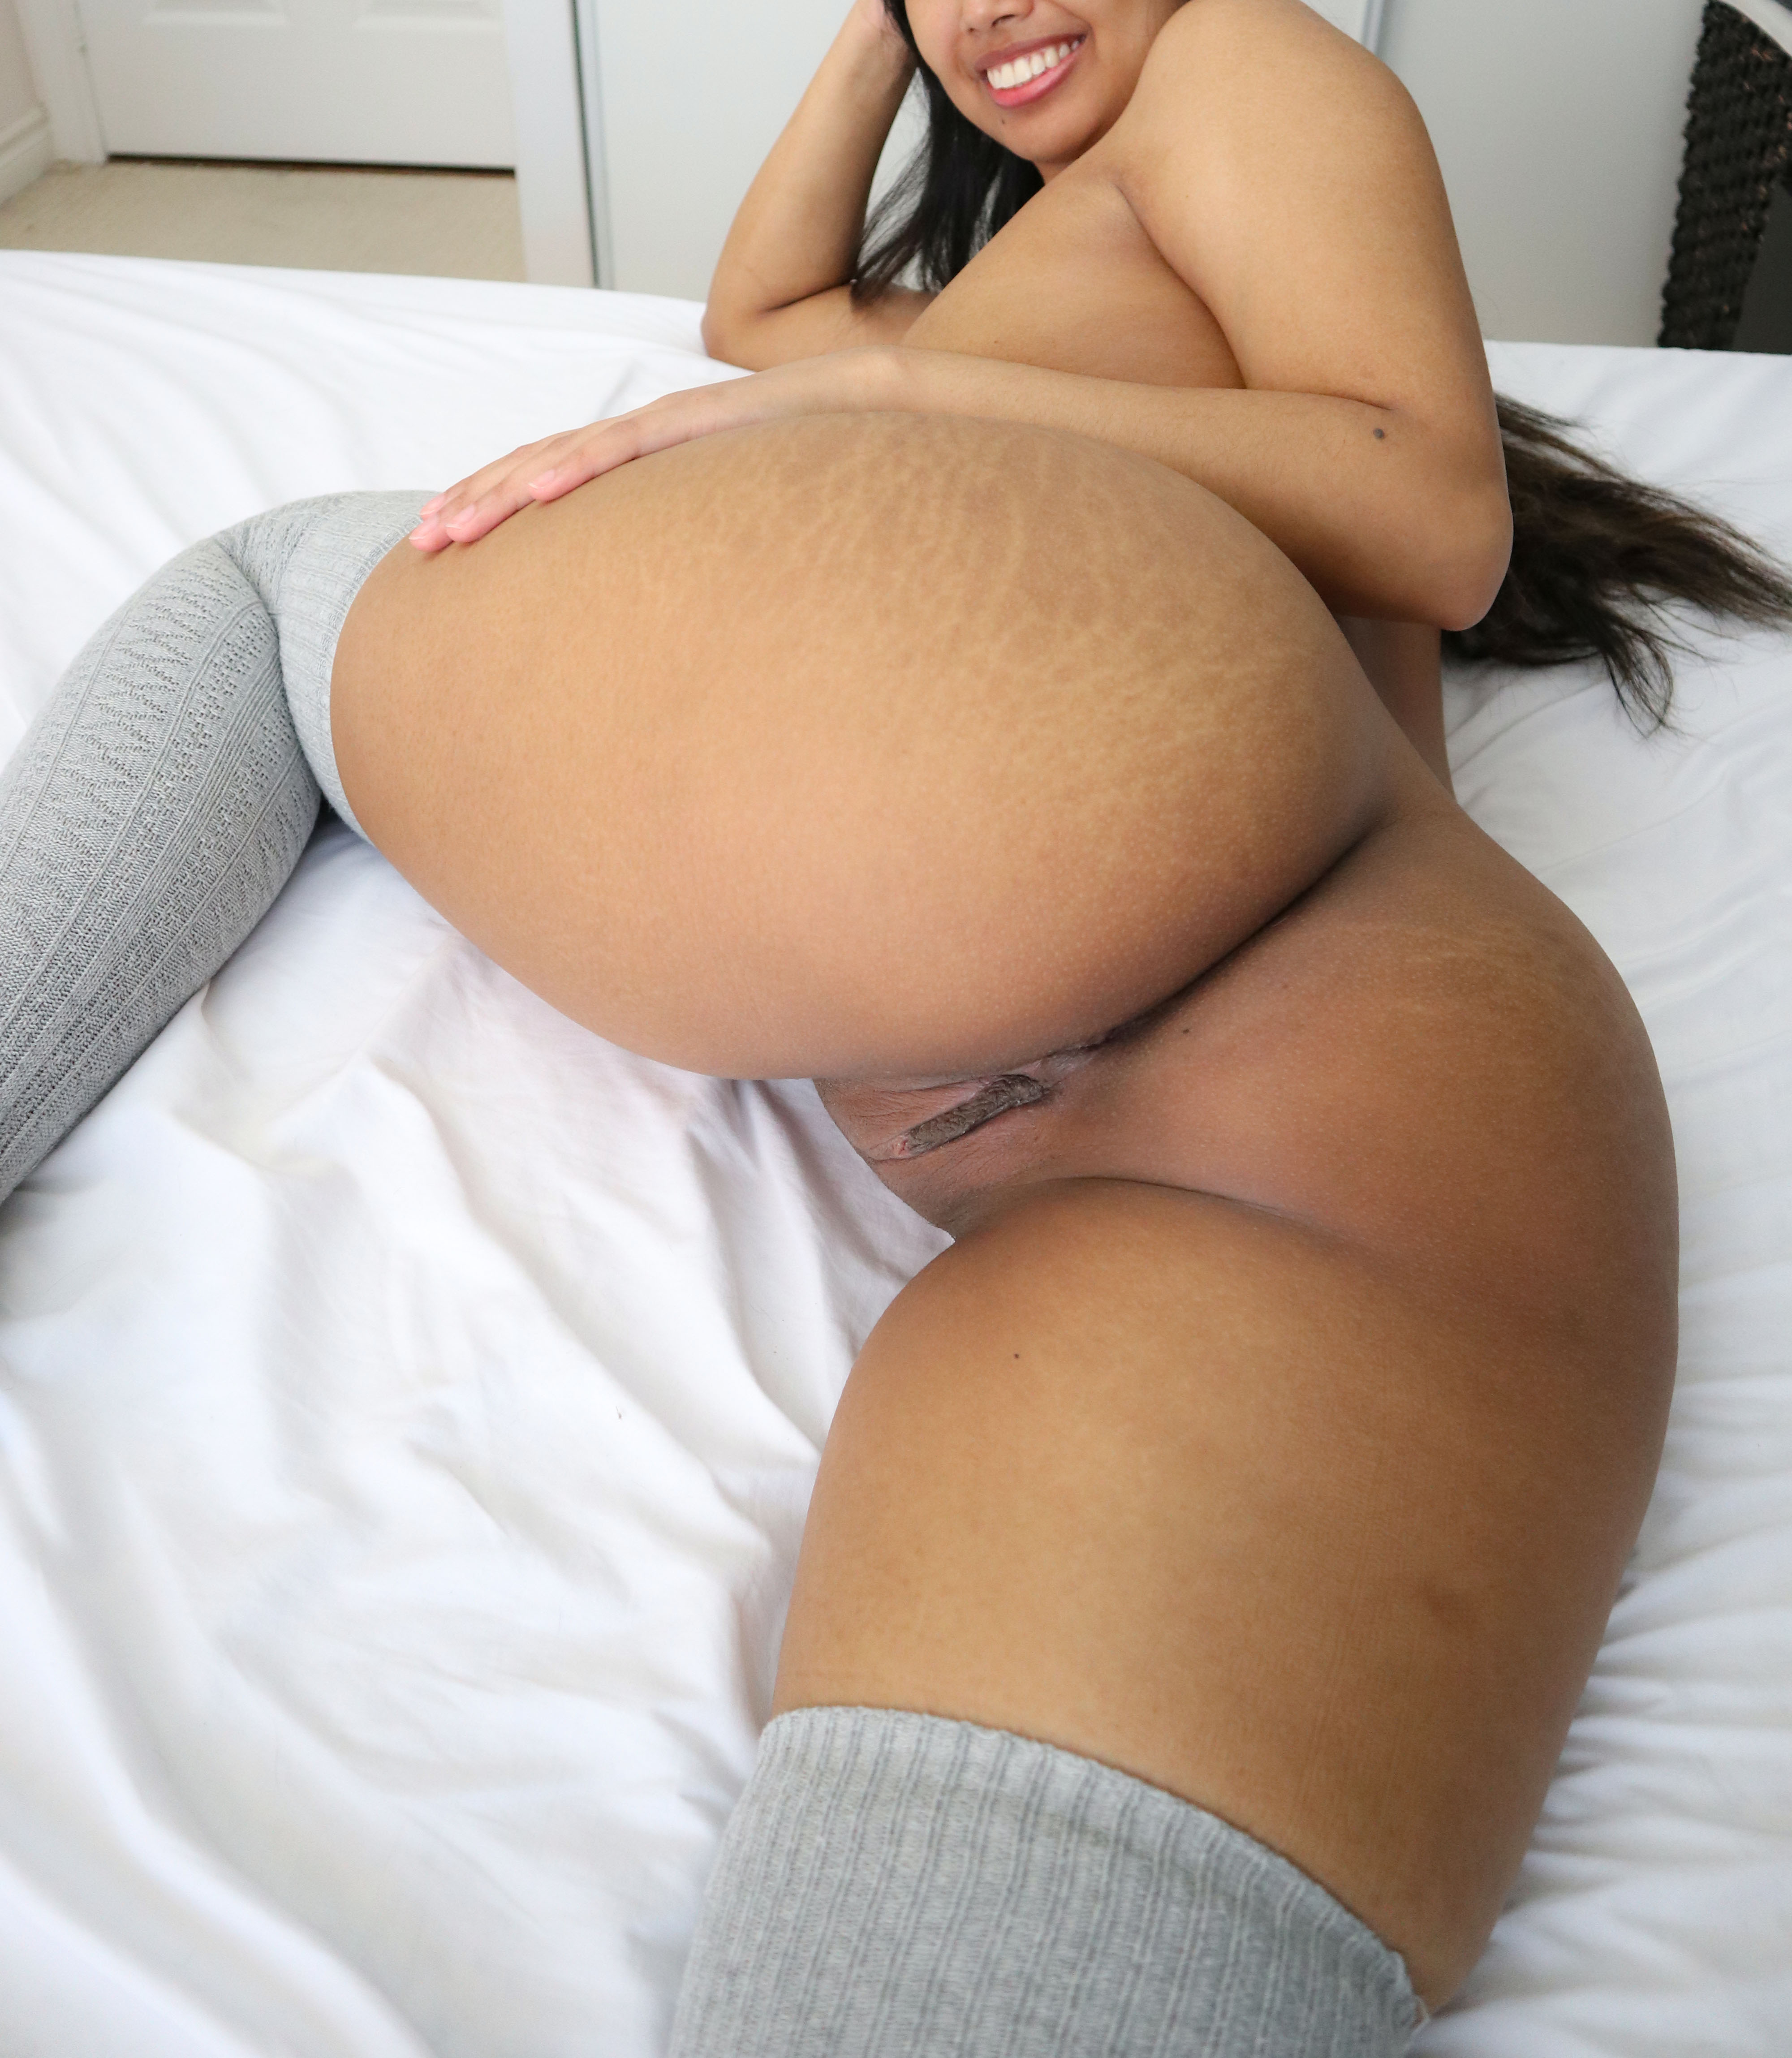 One of our naked asian pics called Ever seen a filipina with an ass like mine?